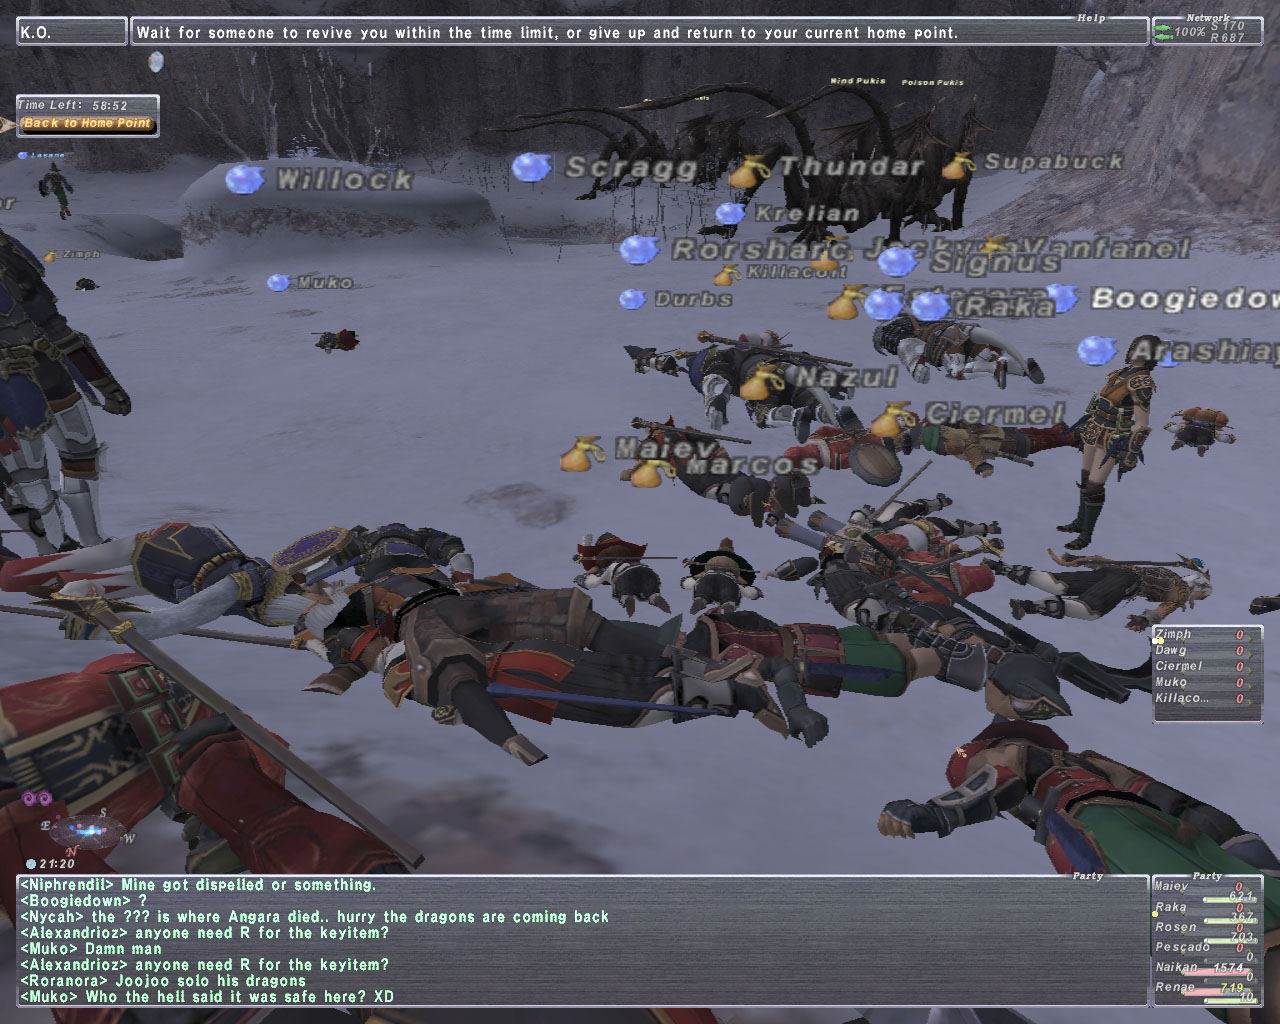 Possibly could be #1 MMO if remastered :D - FFXIAH com